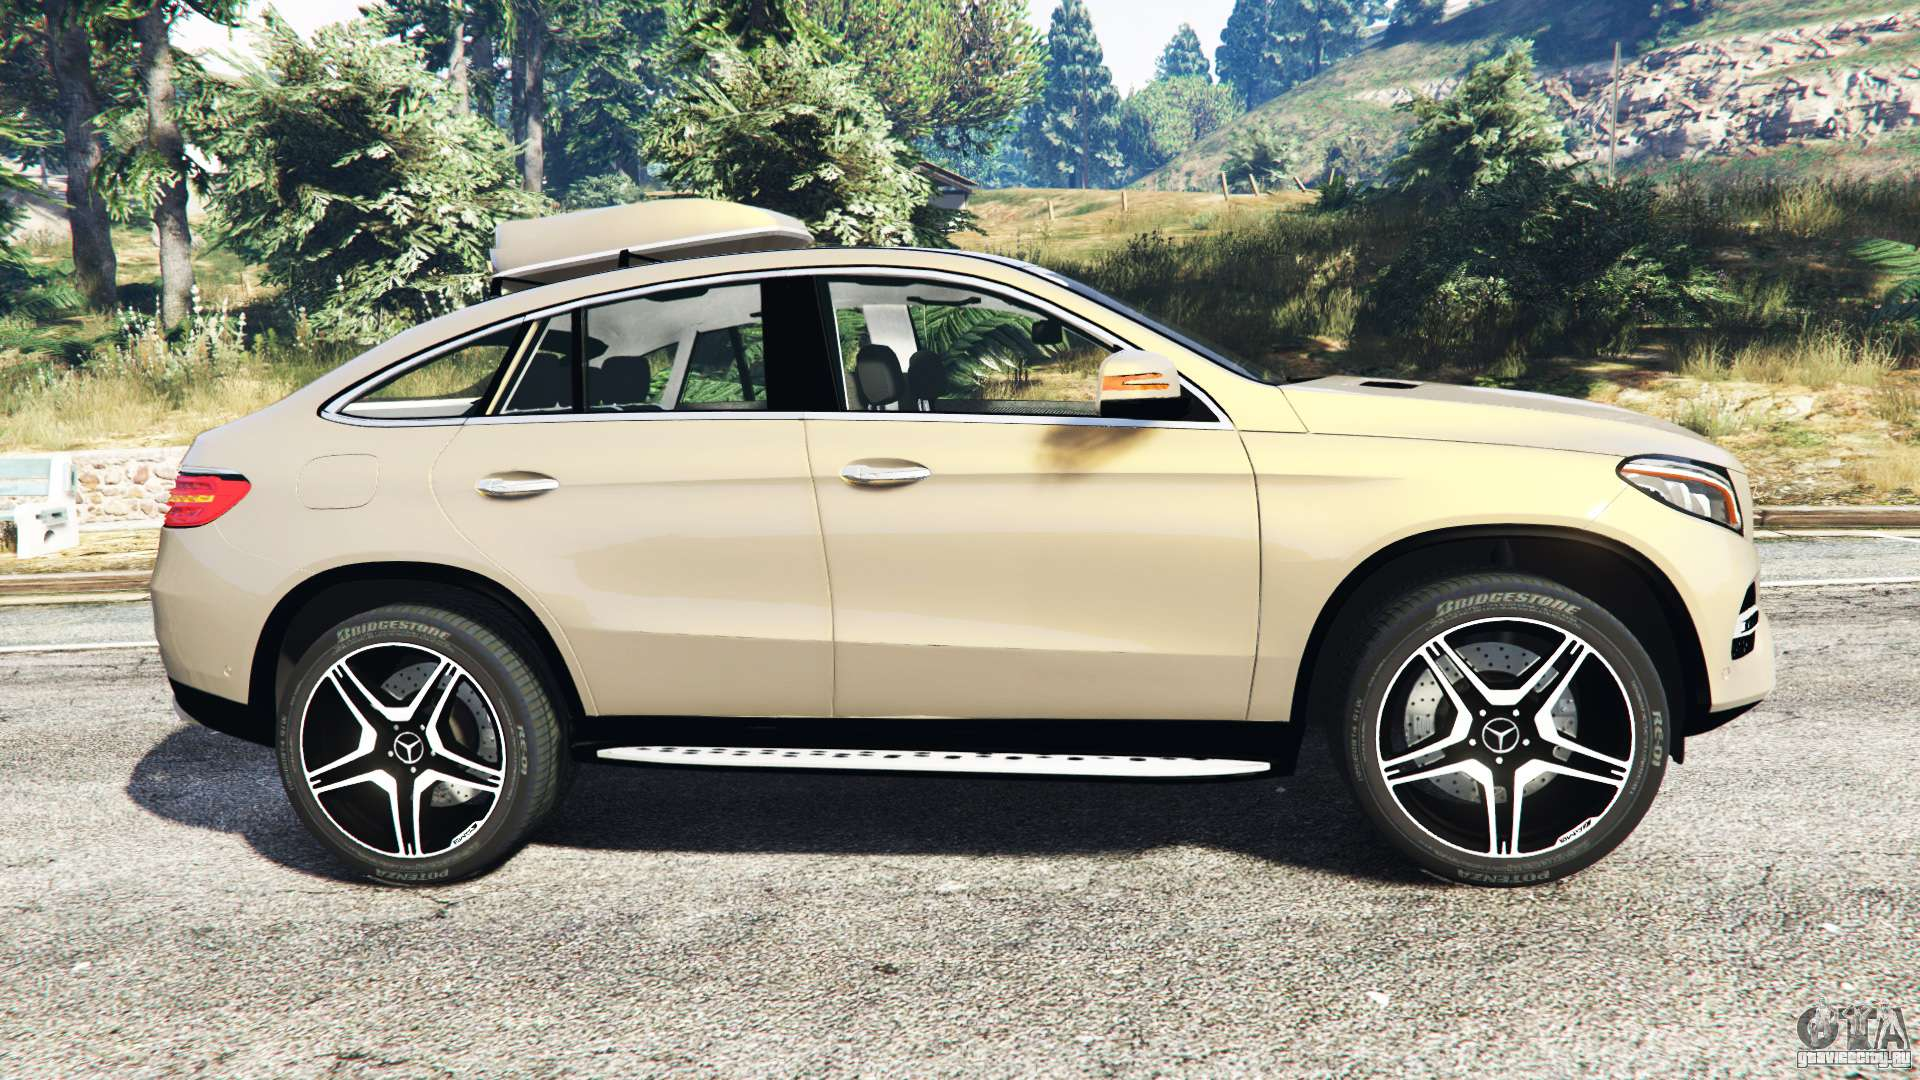 Mercedes benz gle 450 amg 4matic c292 add on gta 5 for Mercedes benz gle 450